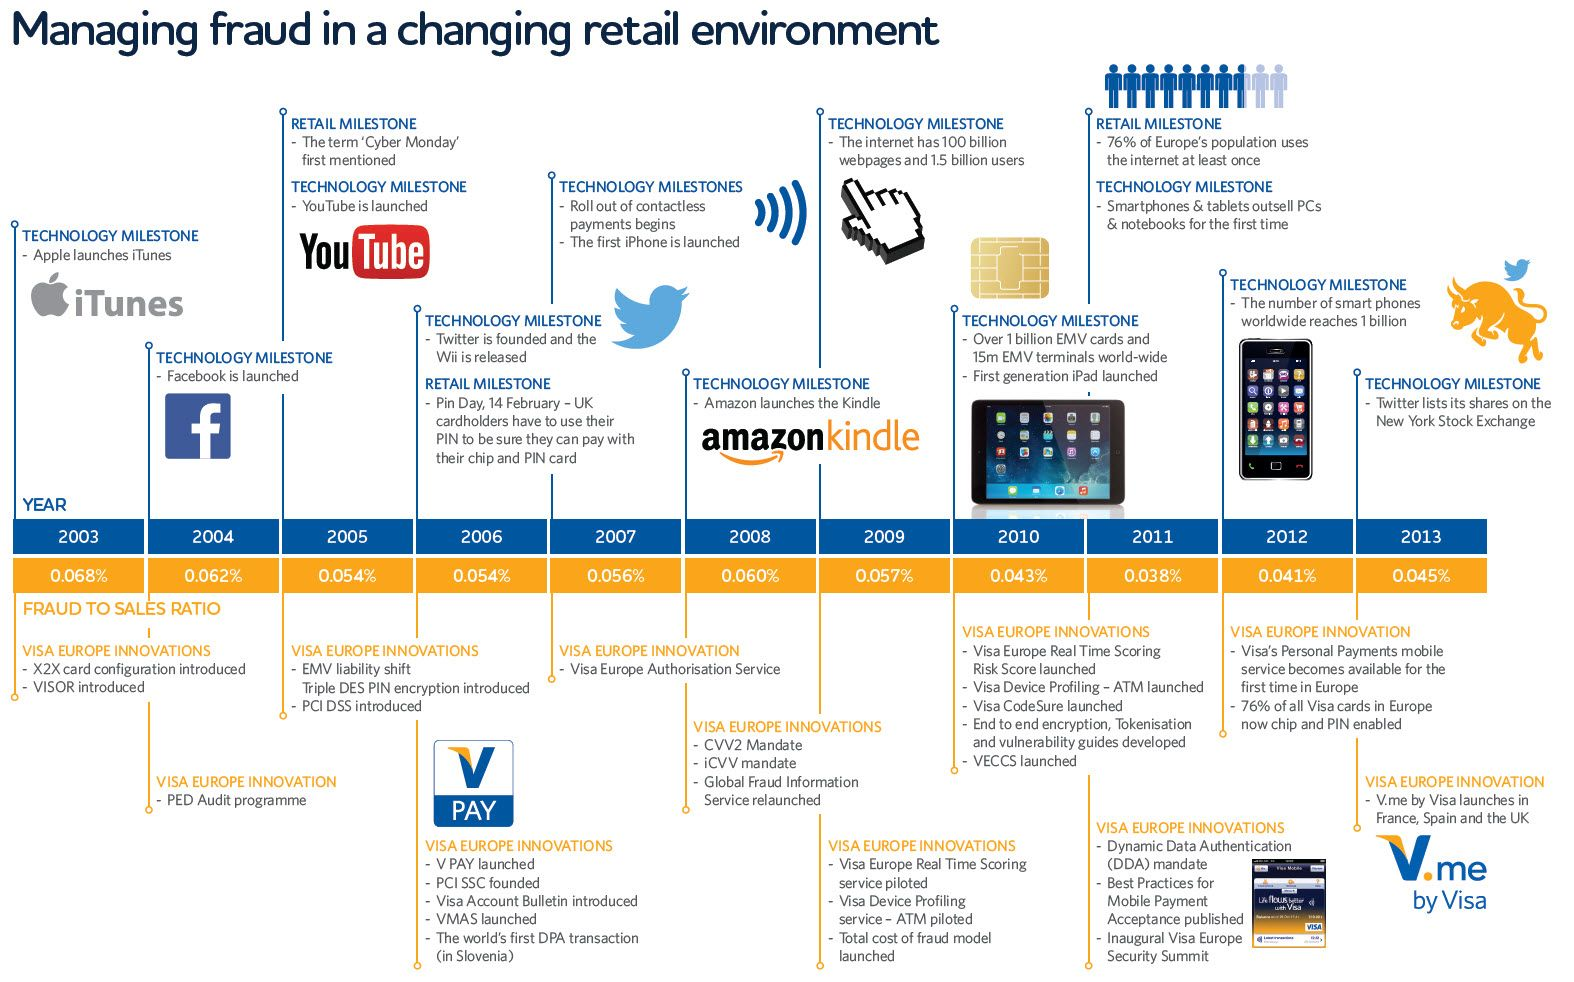 Managing fraud in a changing retail environment: this infographic references the major technological and retail milestones of the past decade, and outlines some of the major initiatives Visa Europe has introduced and/or led during this period, which has contributed to our low annual fraud to sales ratio.